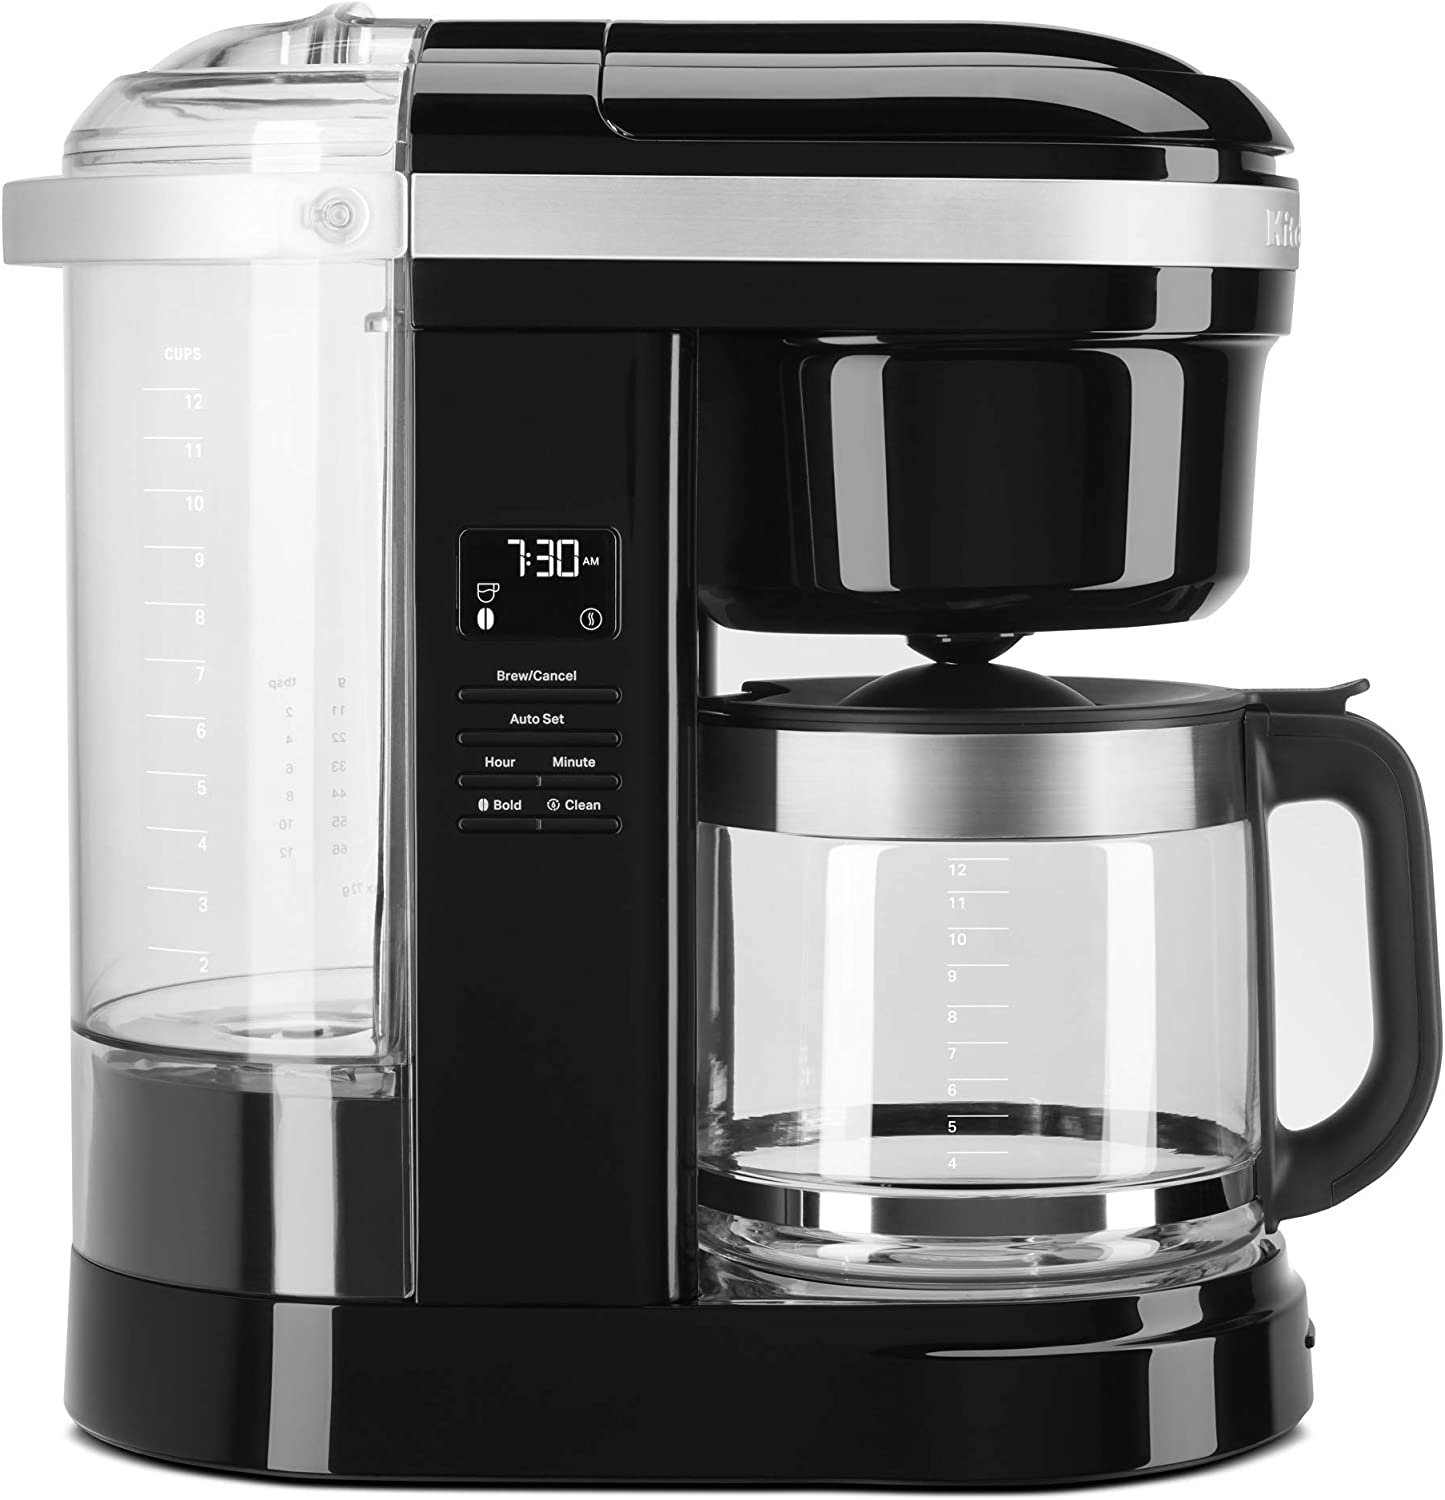 KitchenAid KCM1208OB Drip Coffee Maker, 12 Cup, Onyx Black